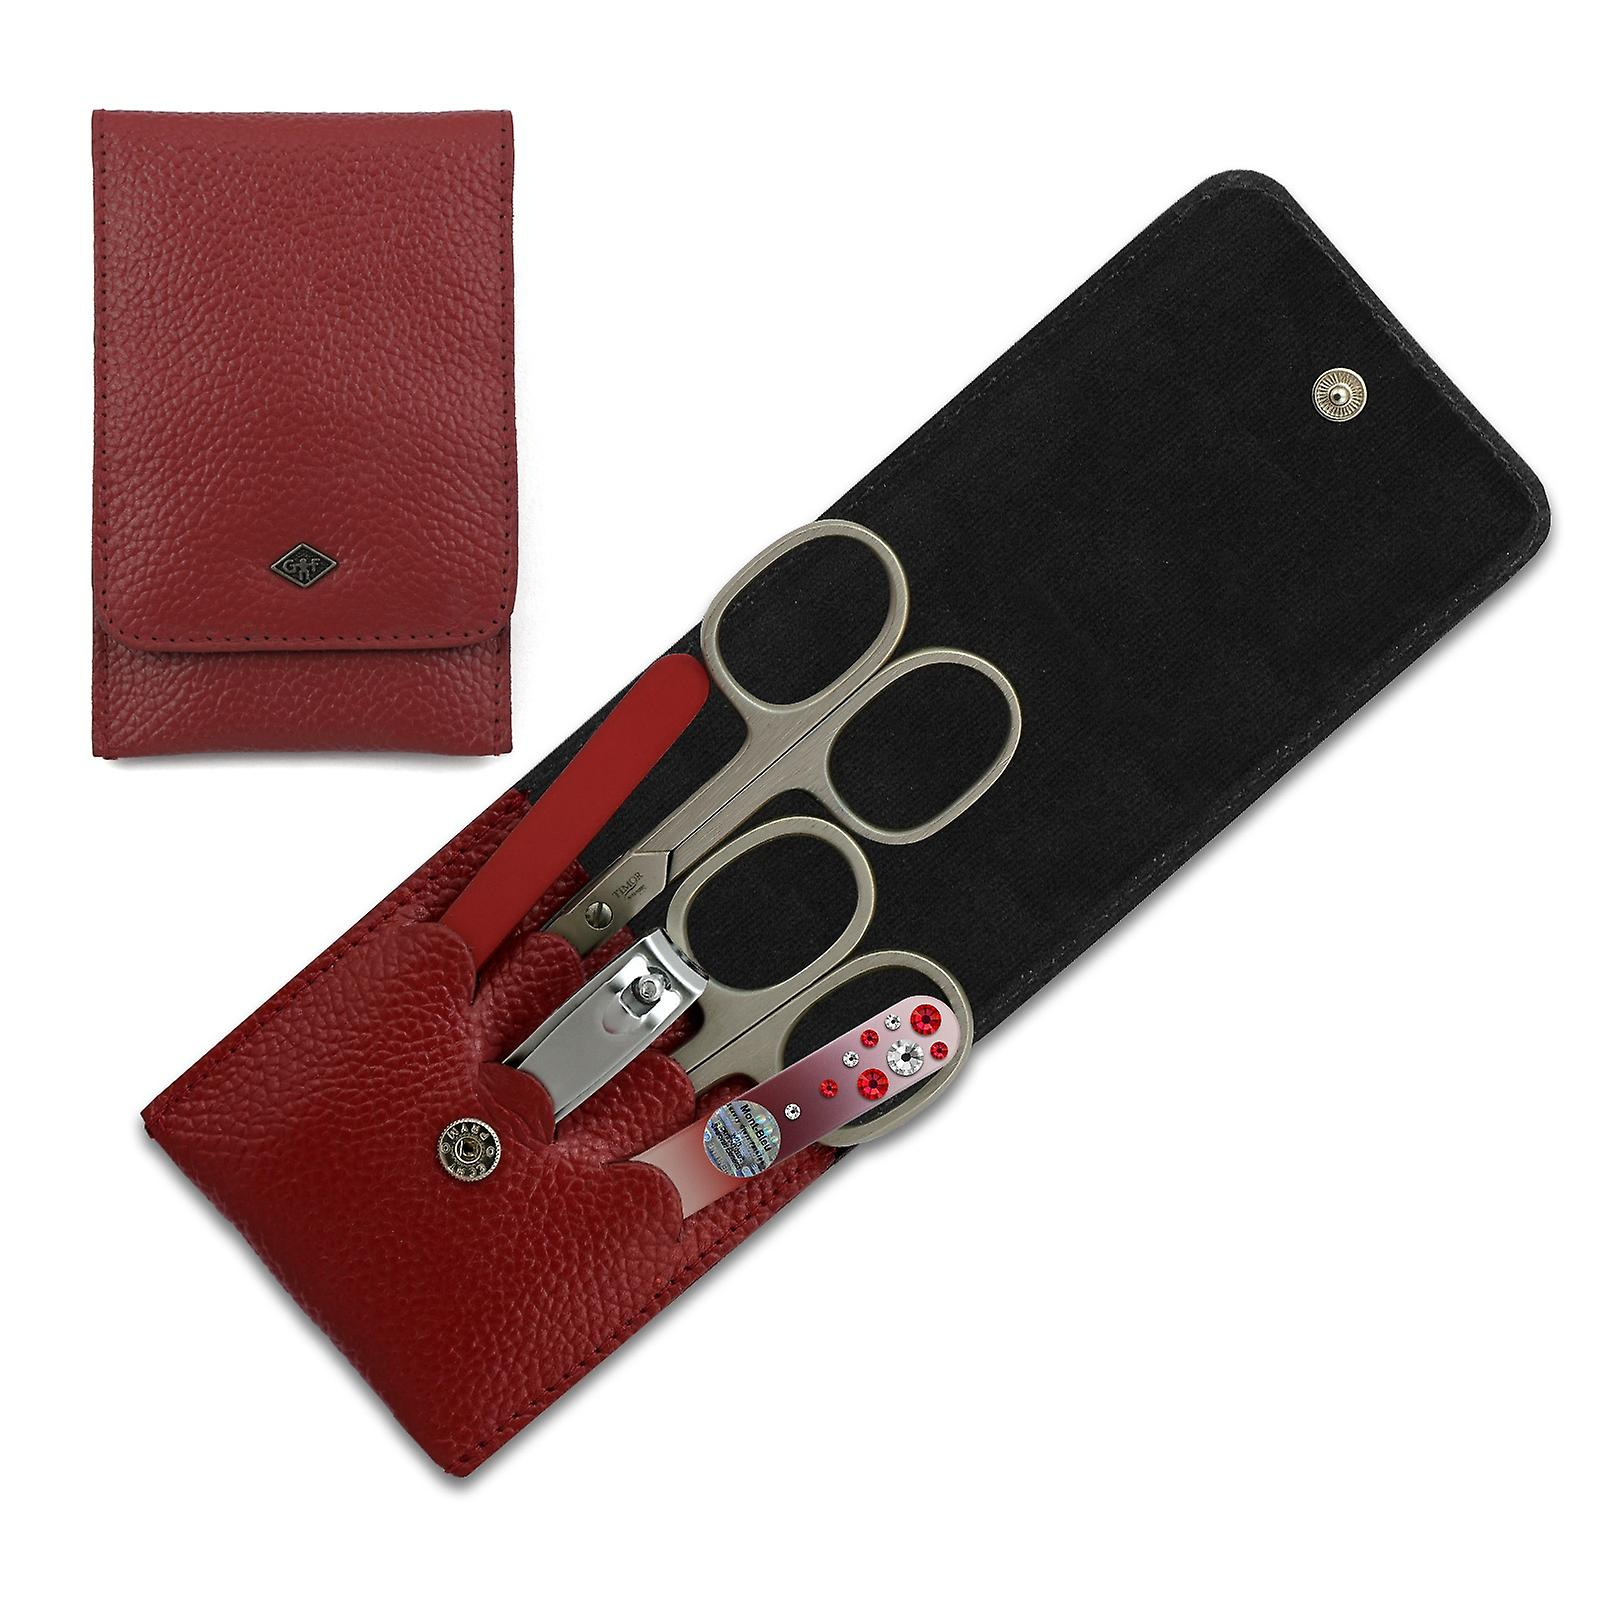 5-Piece Elegant Solingen Women Manicure Set in Red Leather Case, with crystals